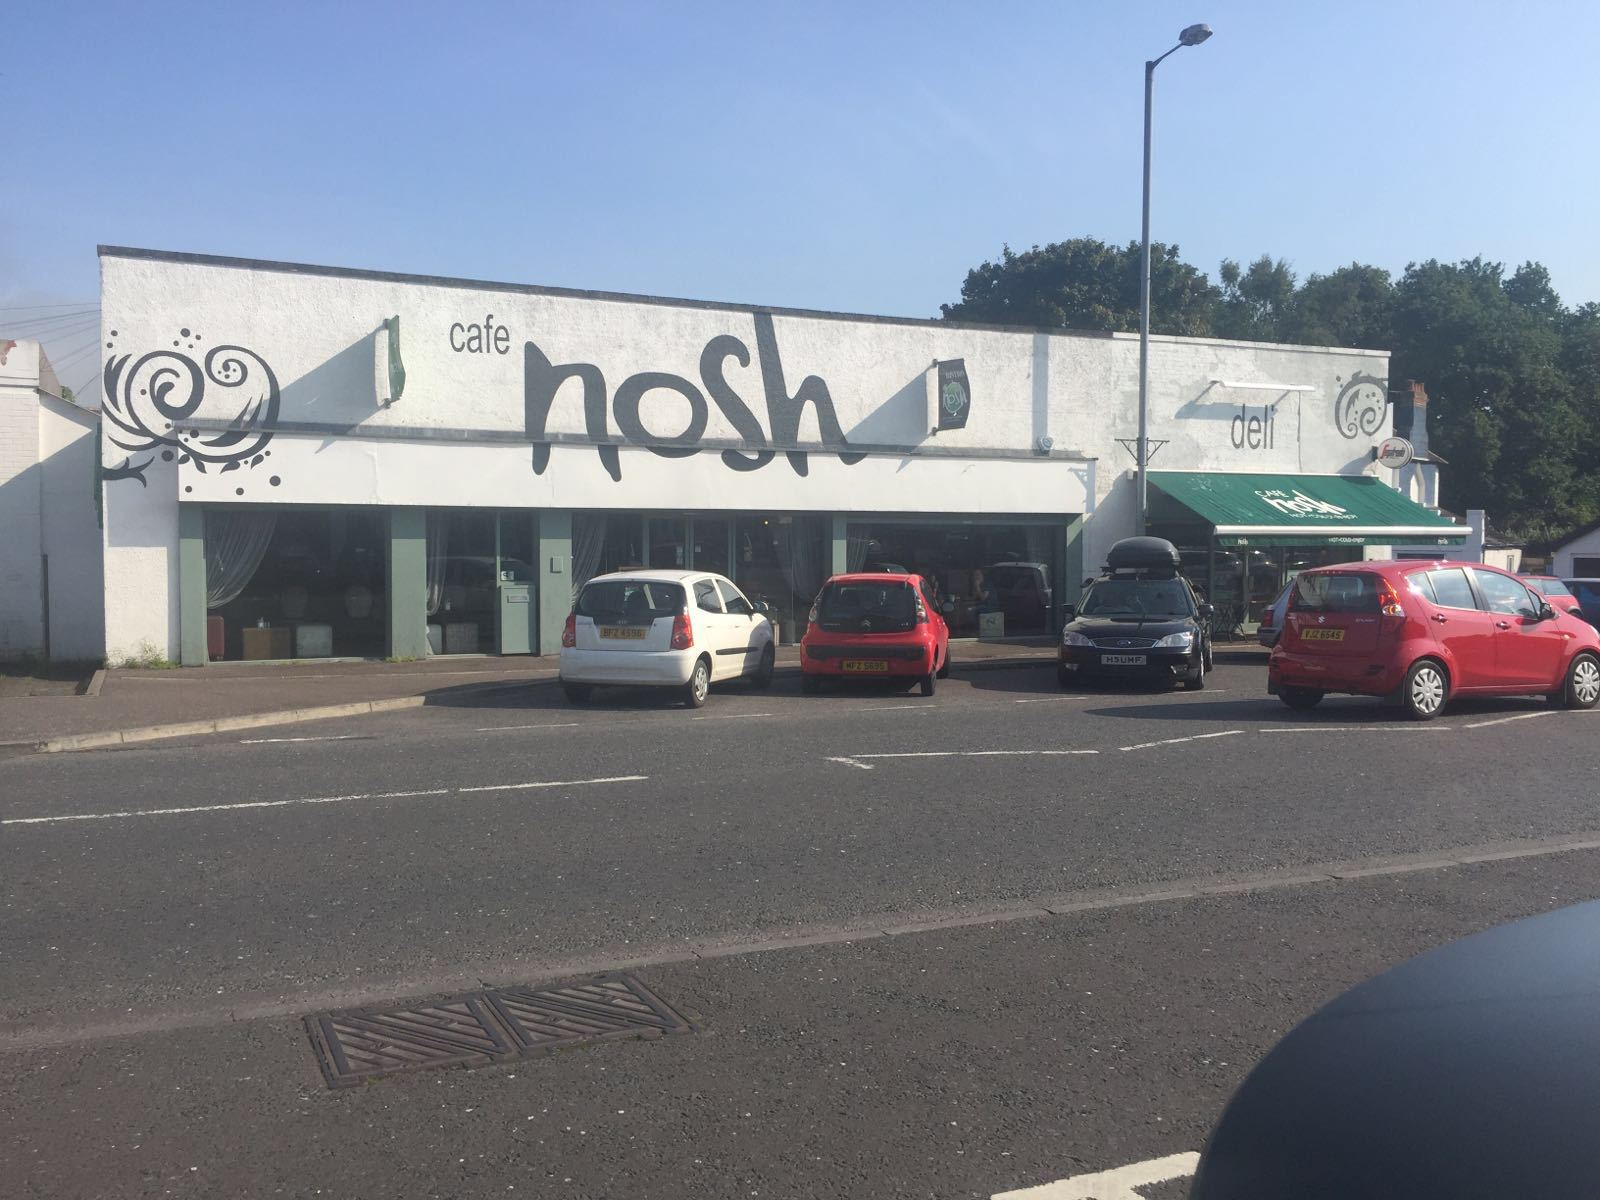 We are now proud to be supplying Cafe nosh